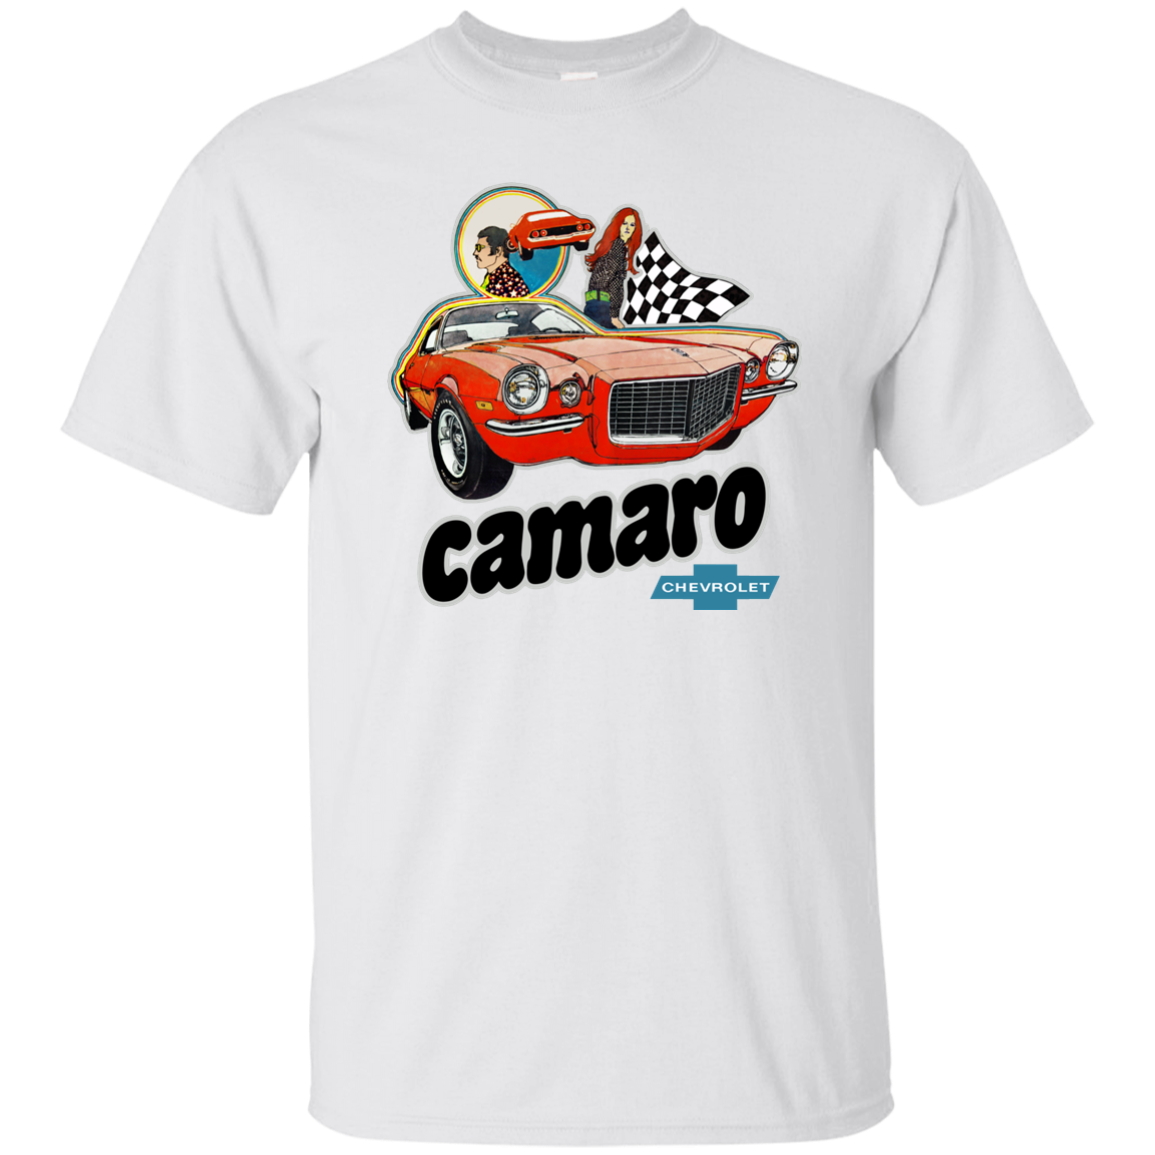 Chevy Camaro, Chevrolet, Heavy Chevy, Muscle Car, Retro, 1960's, 1970's, T-shirt Harajuku Tops Fashion Classic Unique